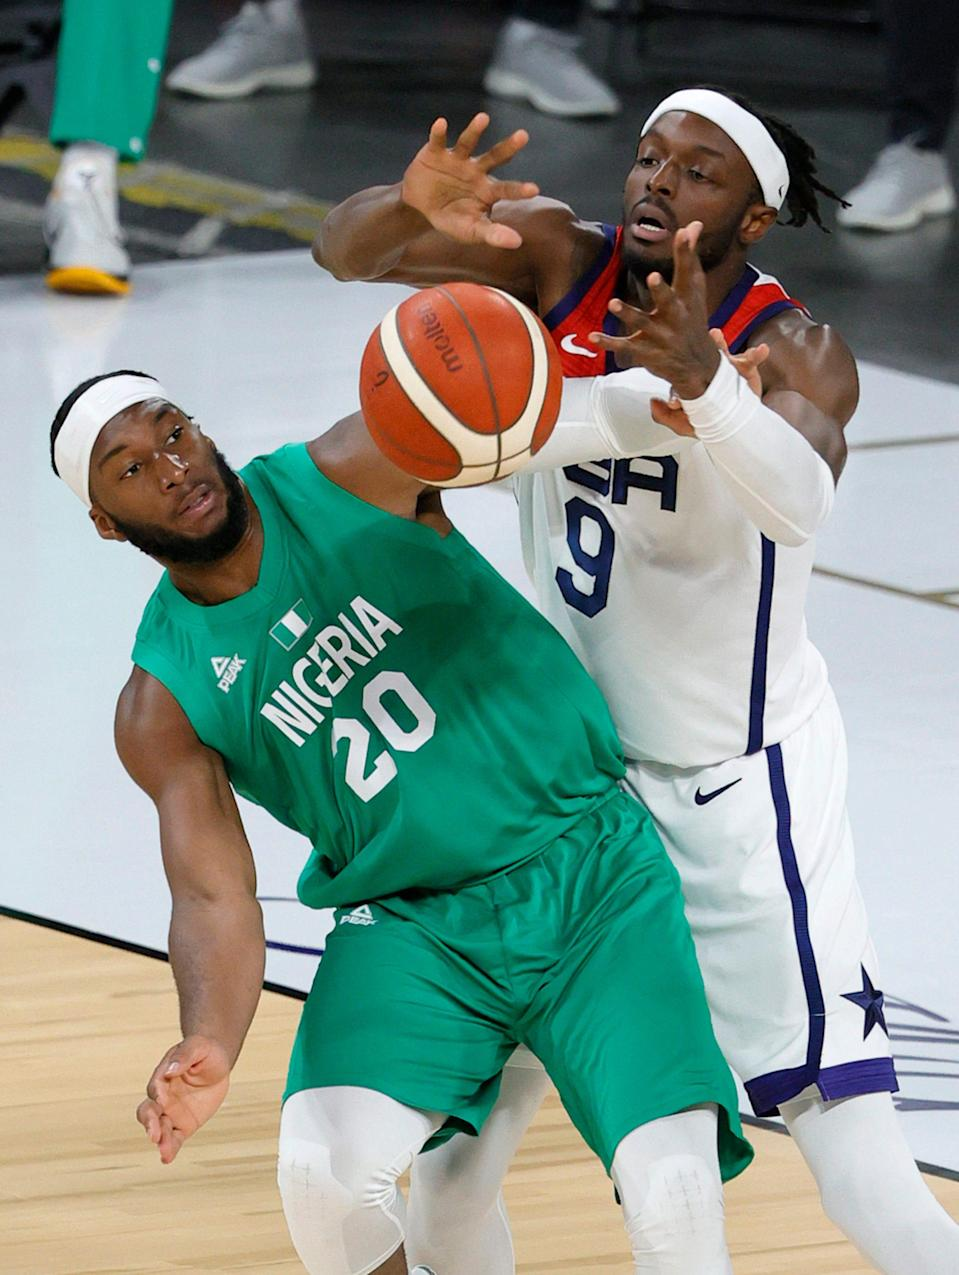 Josh Okogie of Nigeria and Jerami Grant of the United States fight for a rebound during an exhibition game at Michelob ULTRA Arena ahead of the Tokyo Olympic Games on July 10, 2021 in Las Vegas, Nevada.